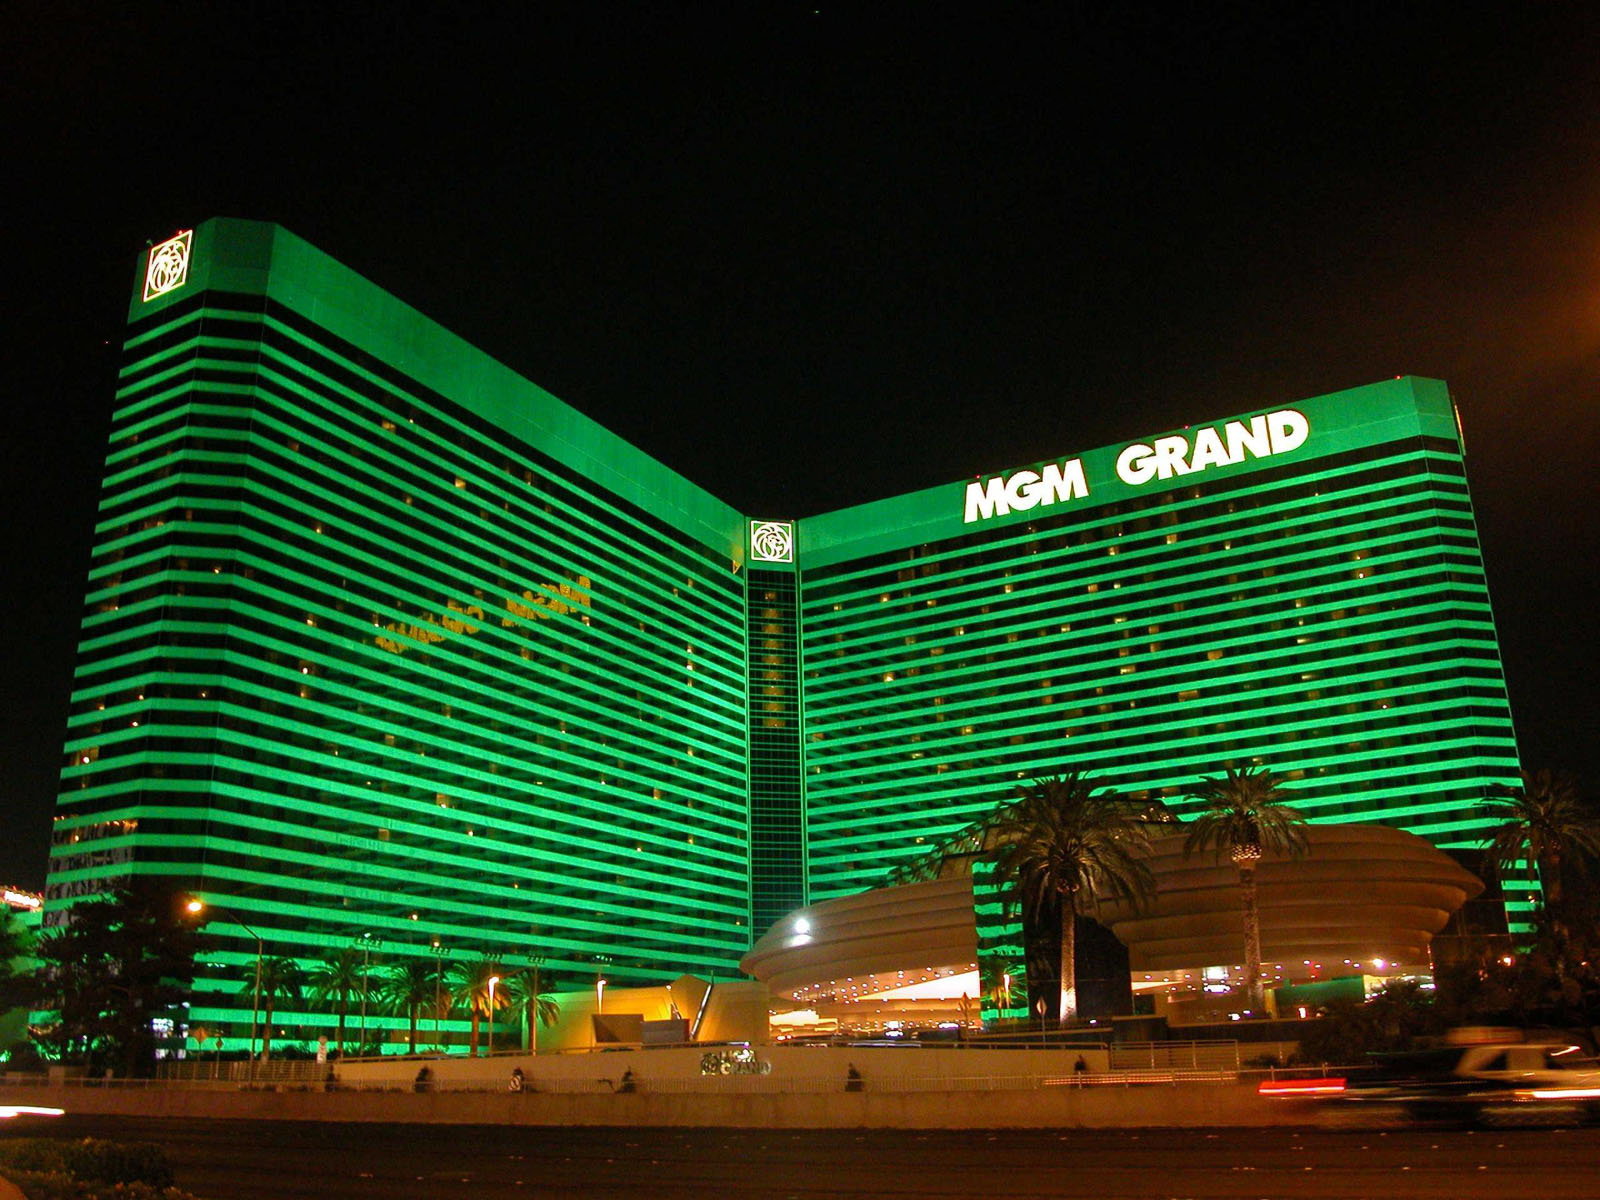 Mgm grand hotel and casino las vegas nevada free casino gambling to play poker